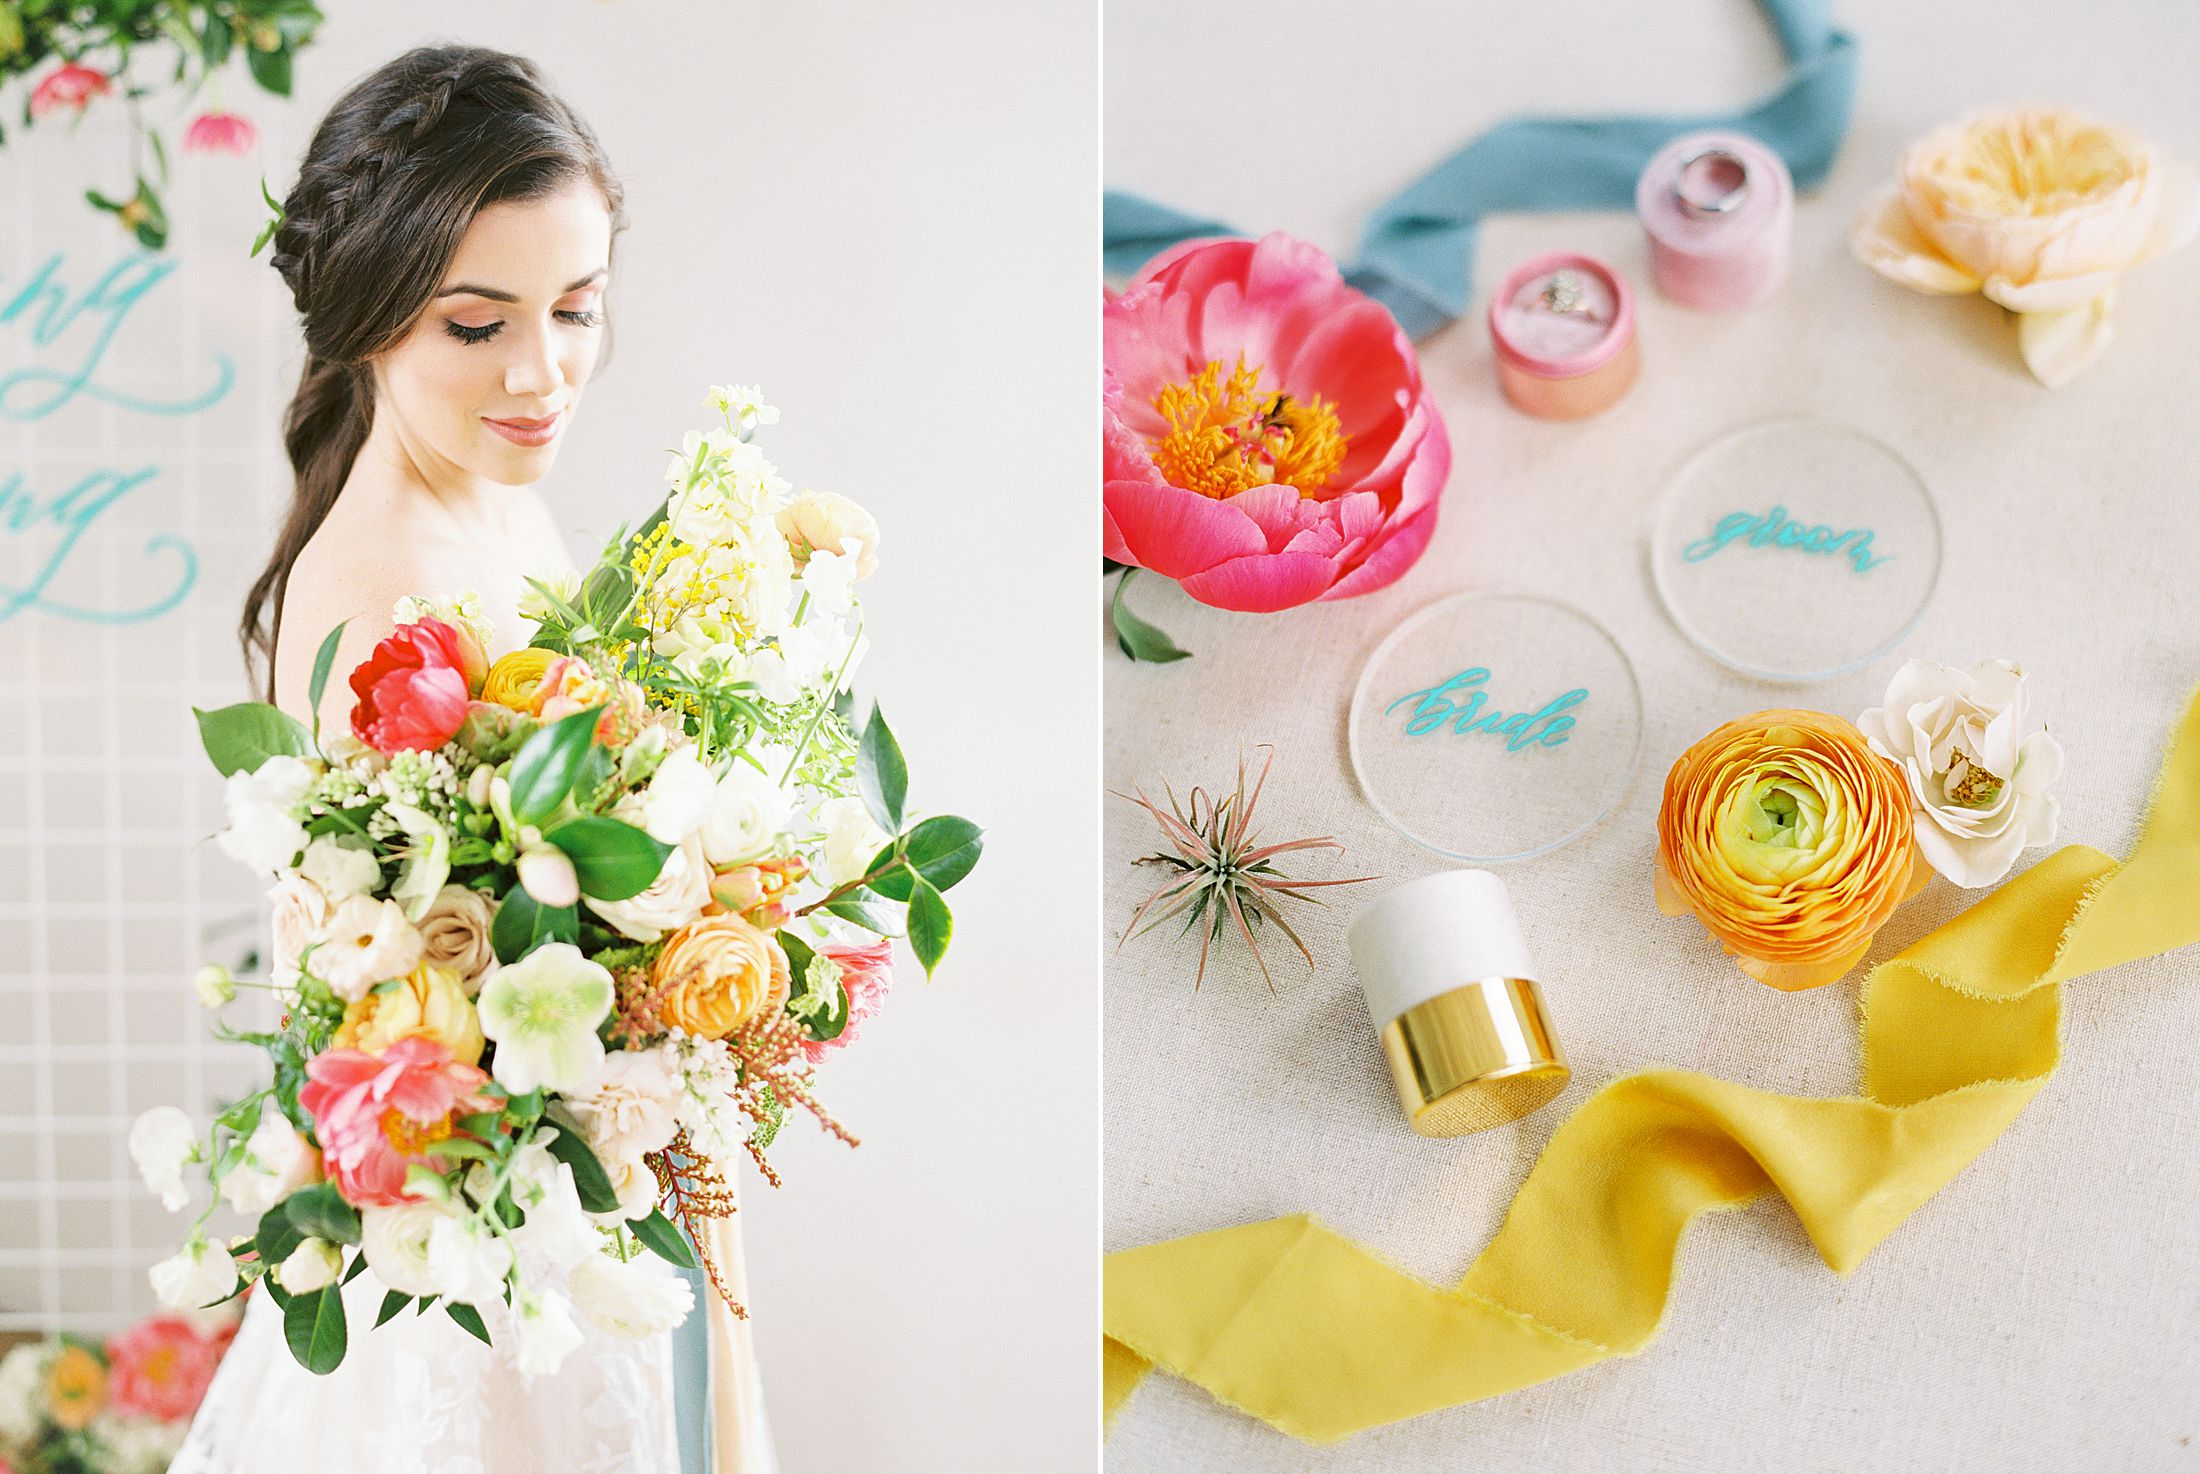 Bay Area Spring Wedding Inspiration - Ashley Baumgartner - Inspired By This - Party Crush Studio and Lens of Lenox Videography - Bay Area Wedding Photography_0010.jpg